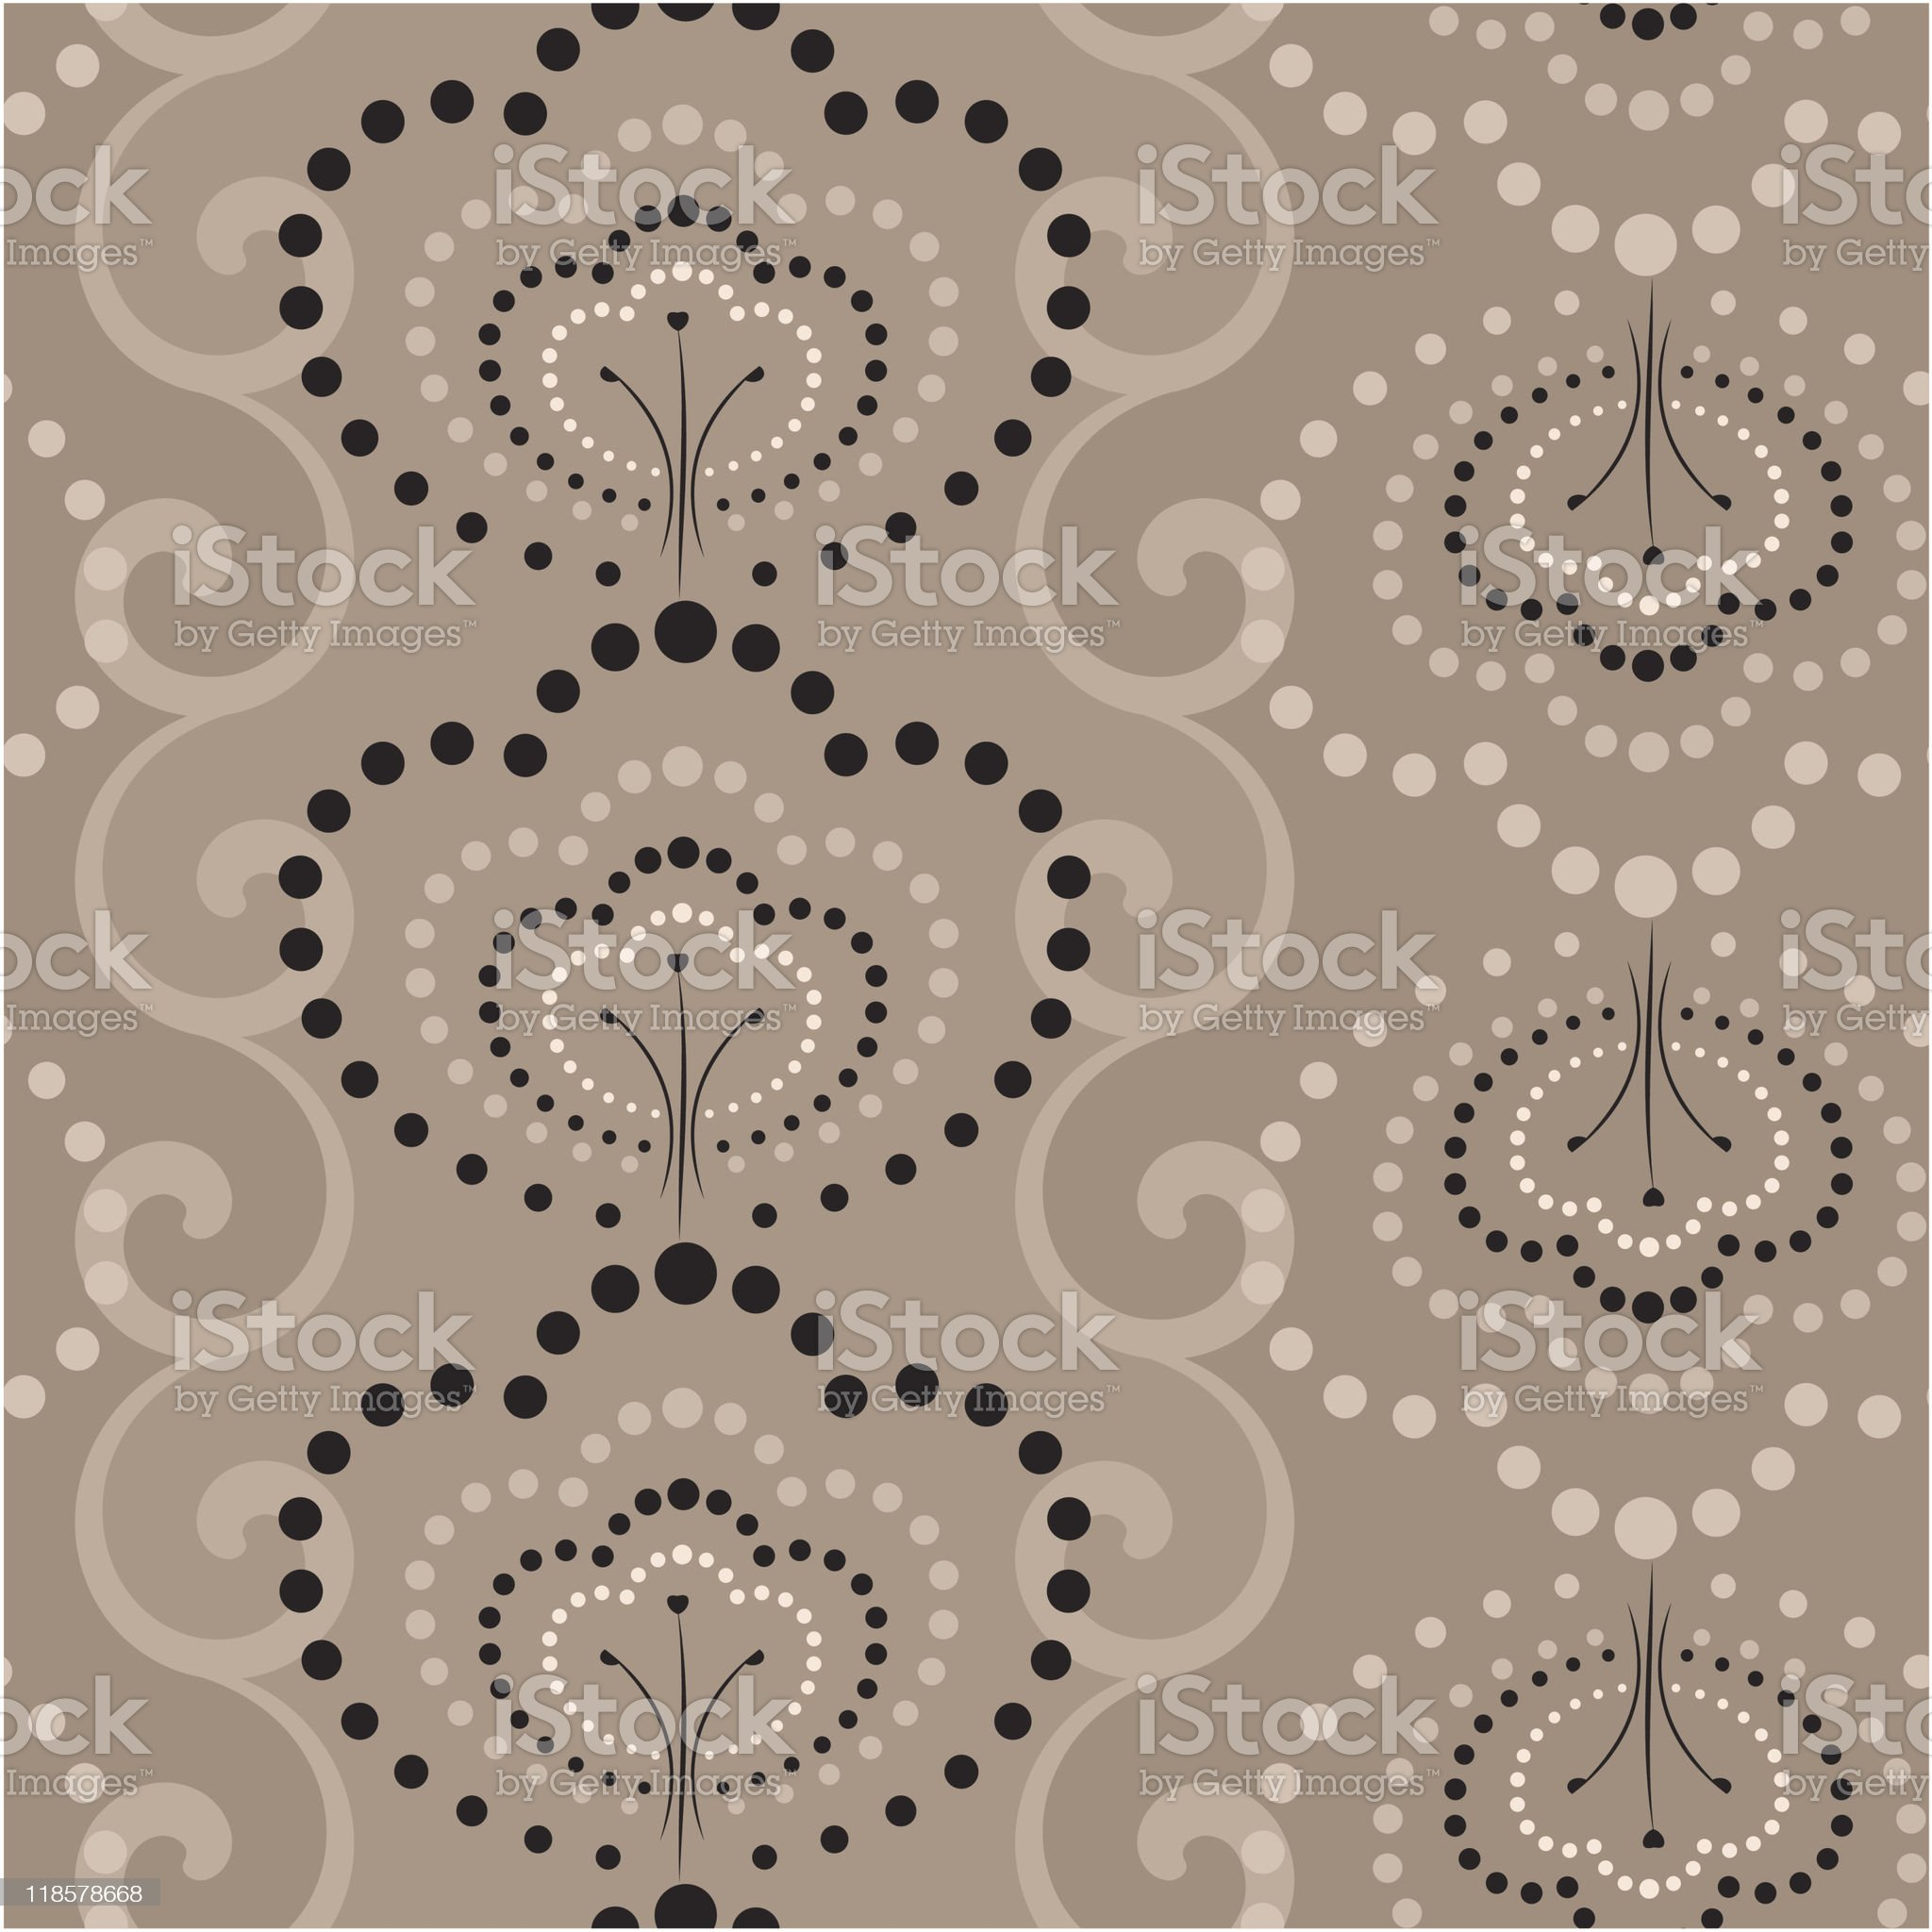 Seamless wallpaper in coffe colors royalty-free stock vector art